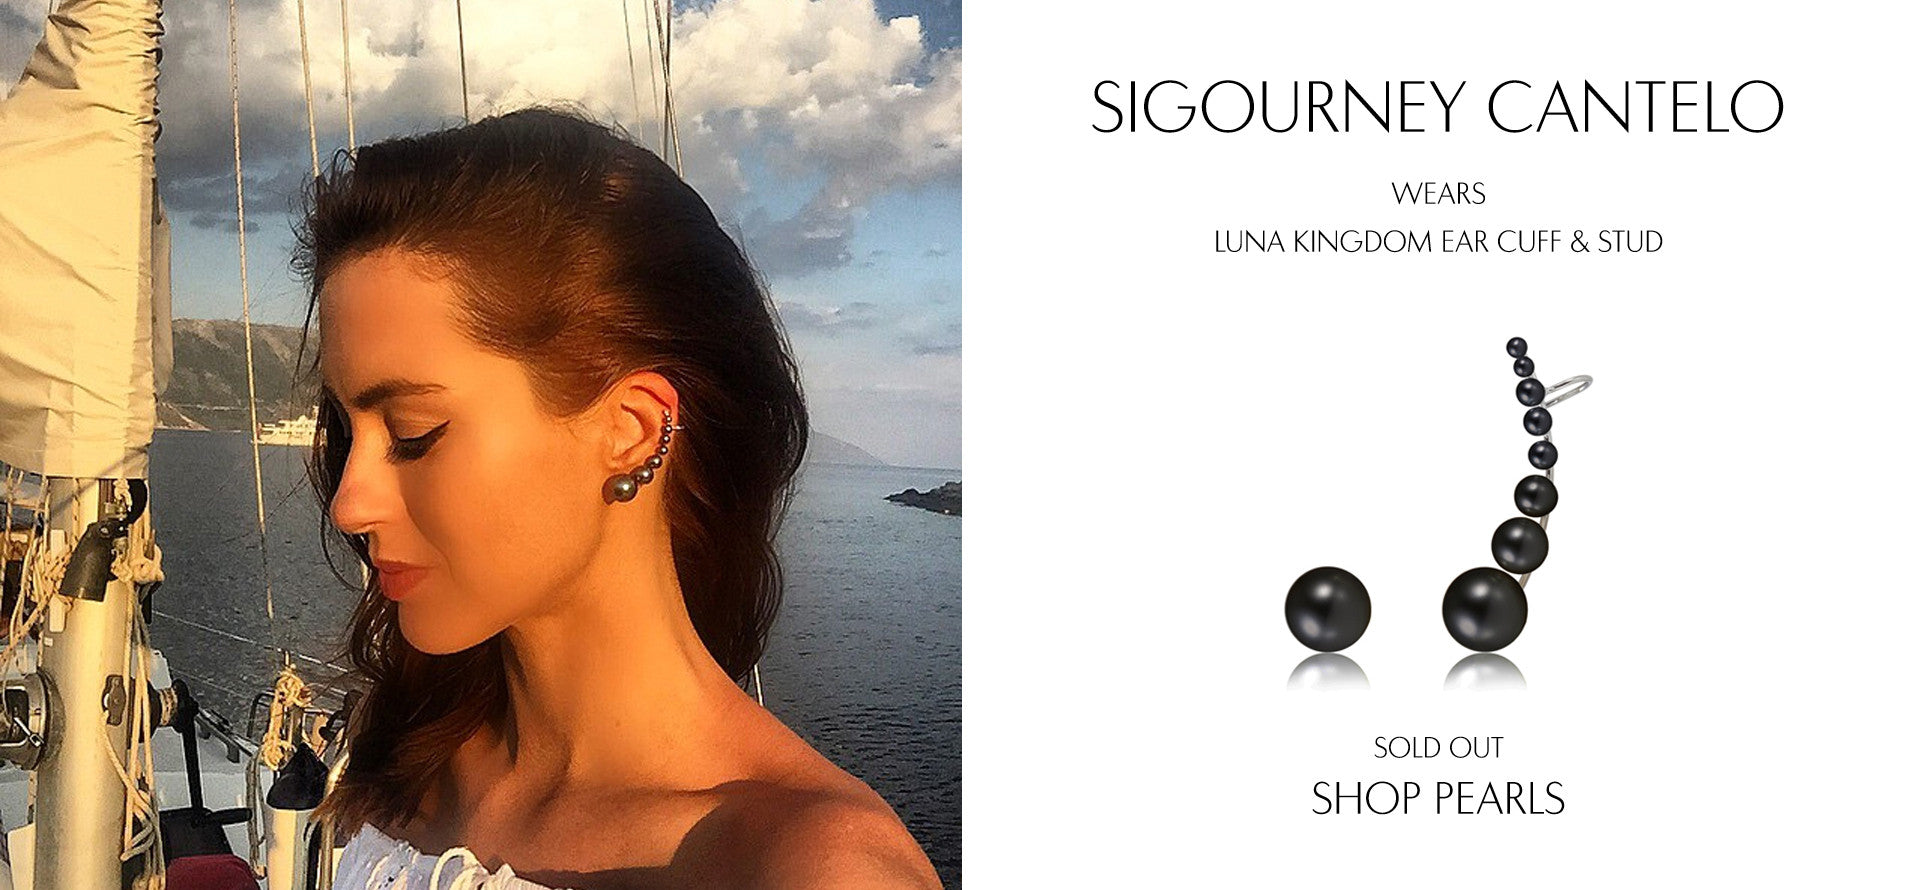 Beauticate - Beauty and Health Blog by Sigourney Cantelo wears Sarina Suriano Luna Kingdom pearl earcuff and stud